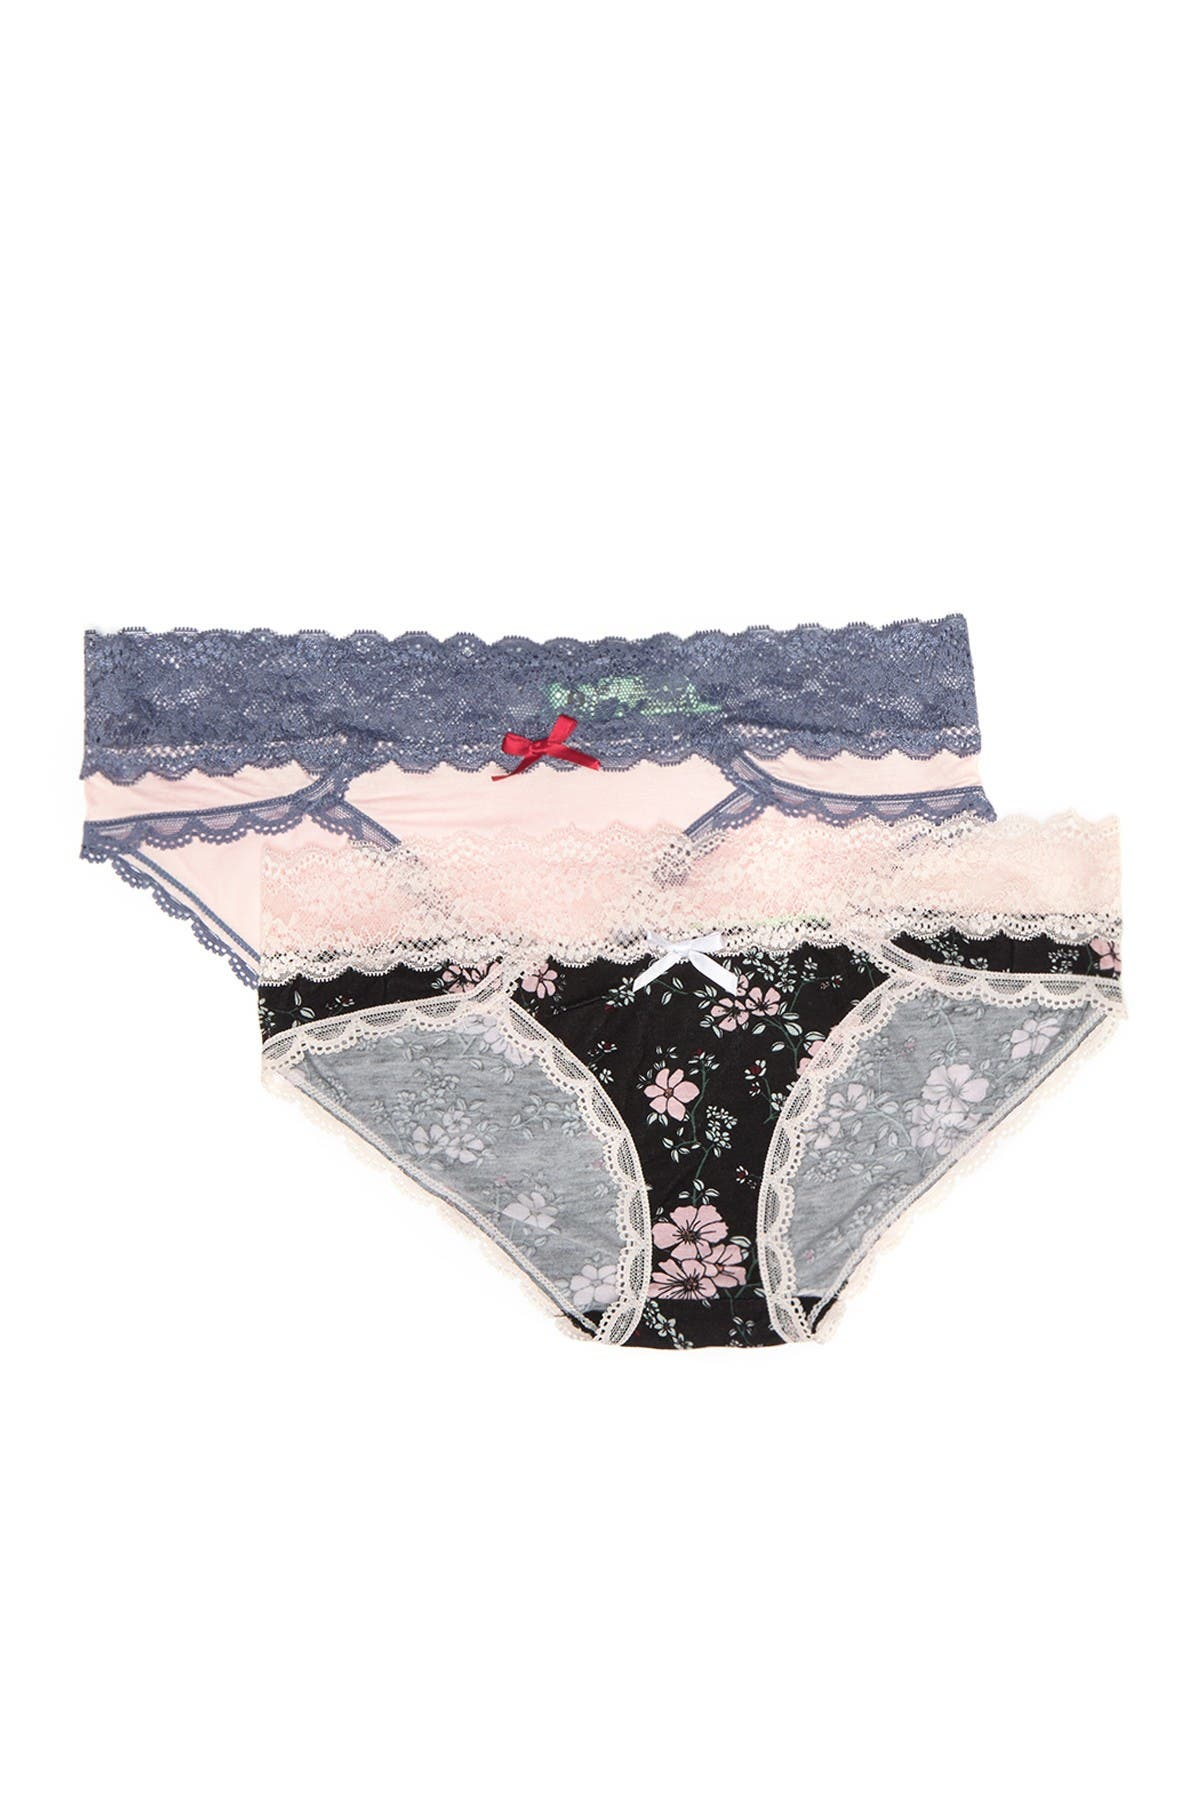 Image of Honeydew Intimates Ahna Lace Trim Hipster - Pack of 2